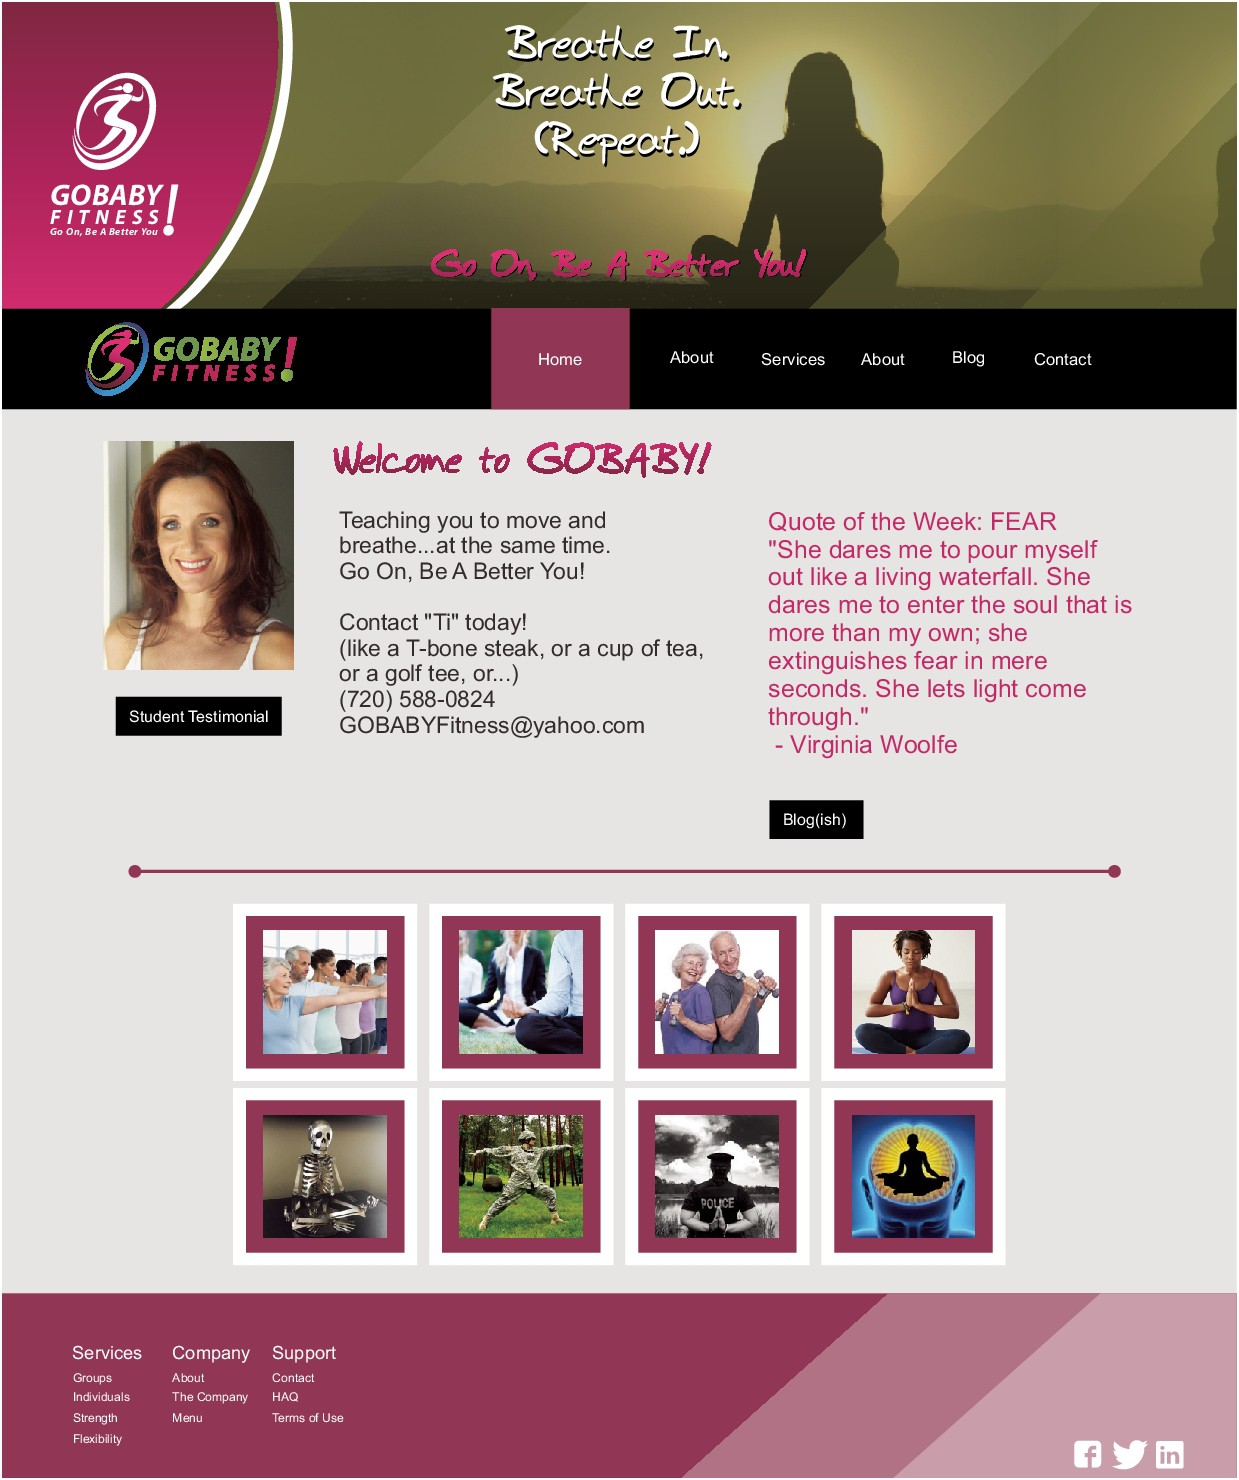 GOBABYFITNESS.COM Website Design